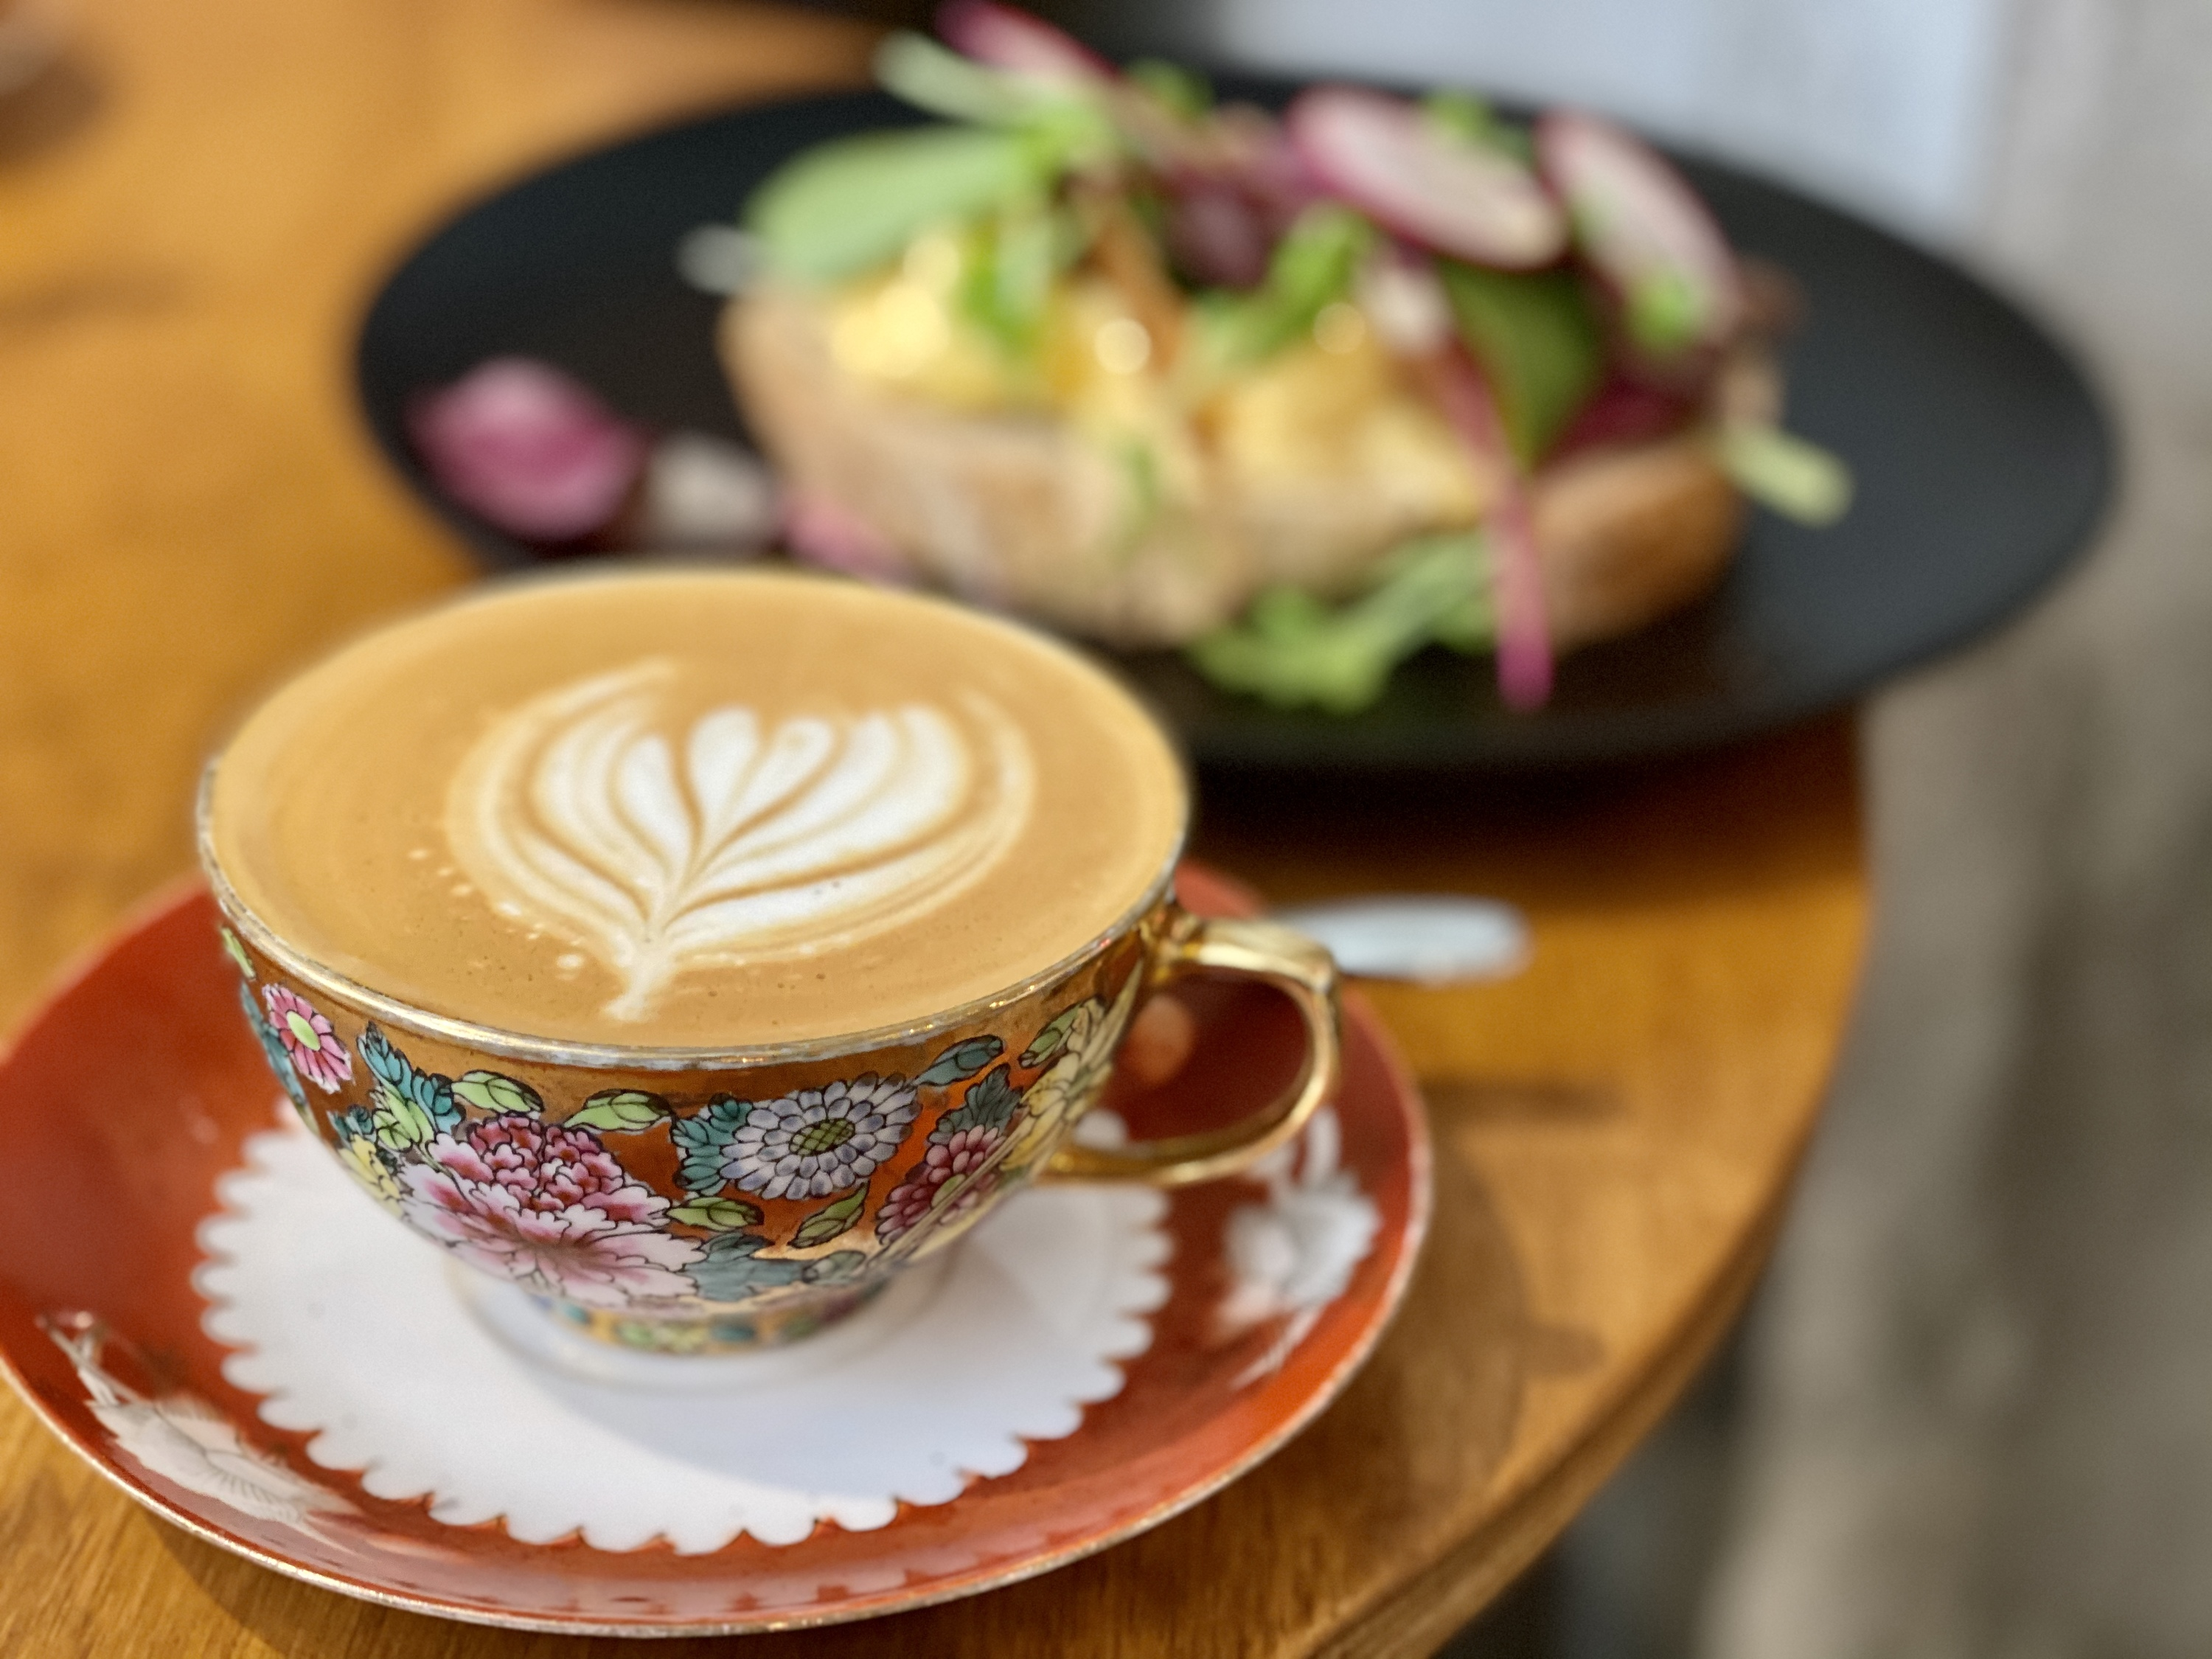 Best cafes and coffee shops to visit in Kowloon